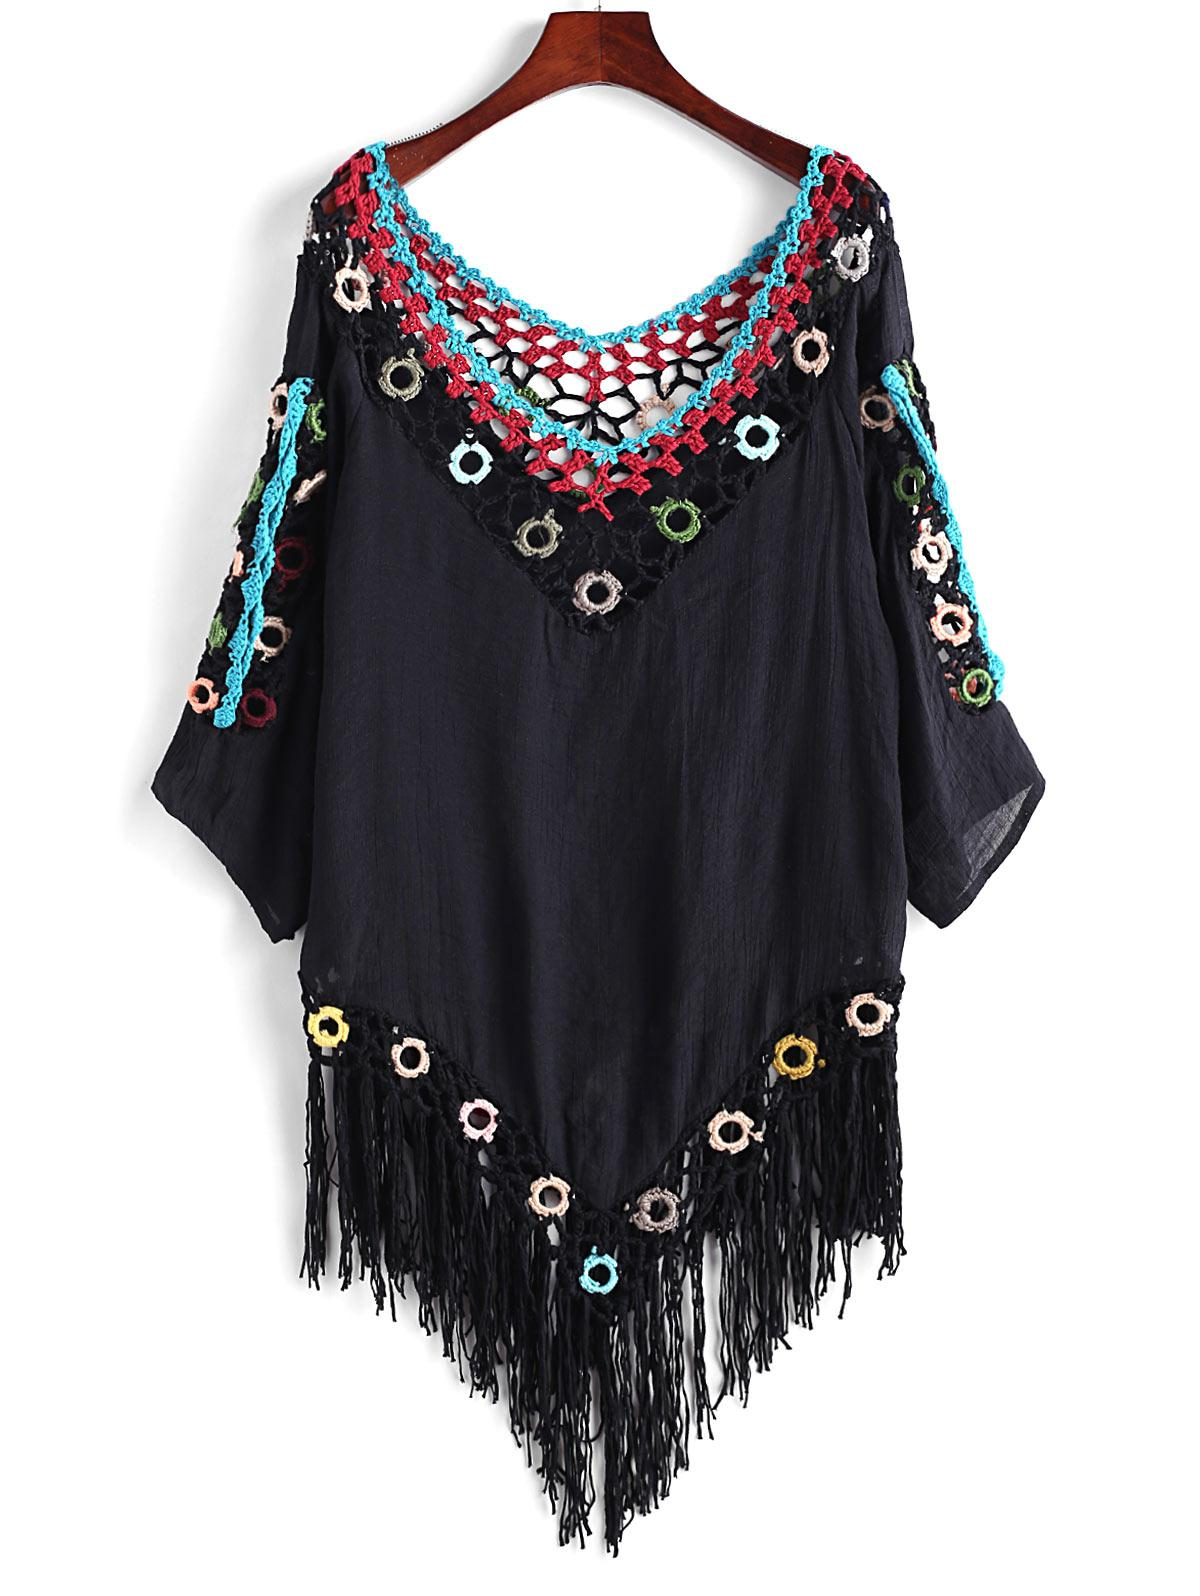 Crochet Panel Fringed Beach Top, Black